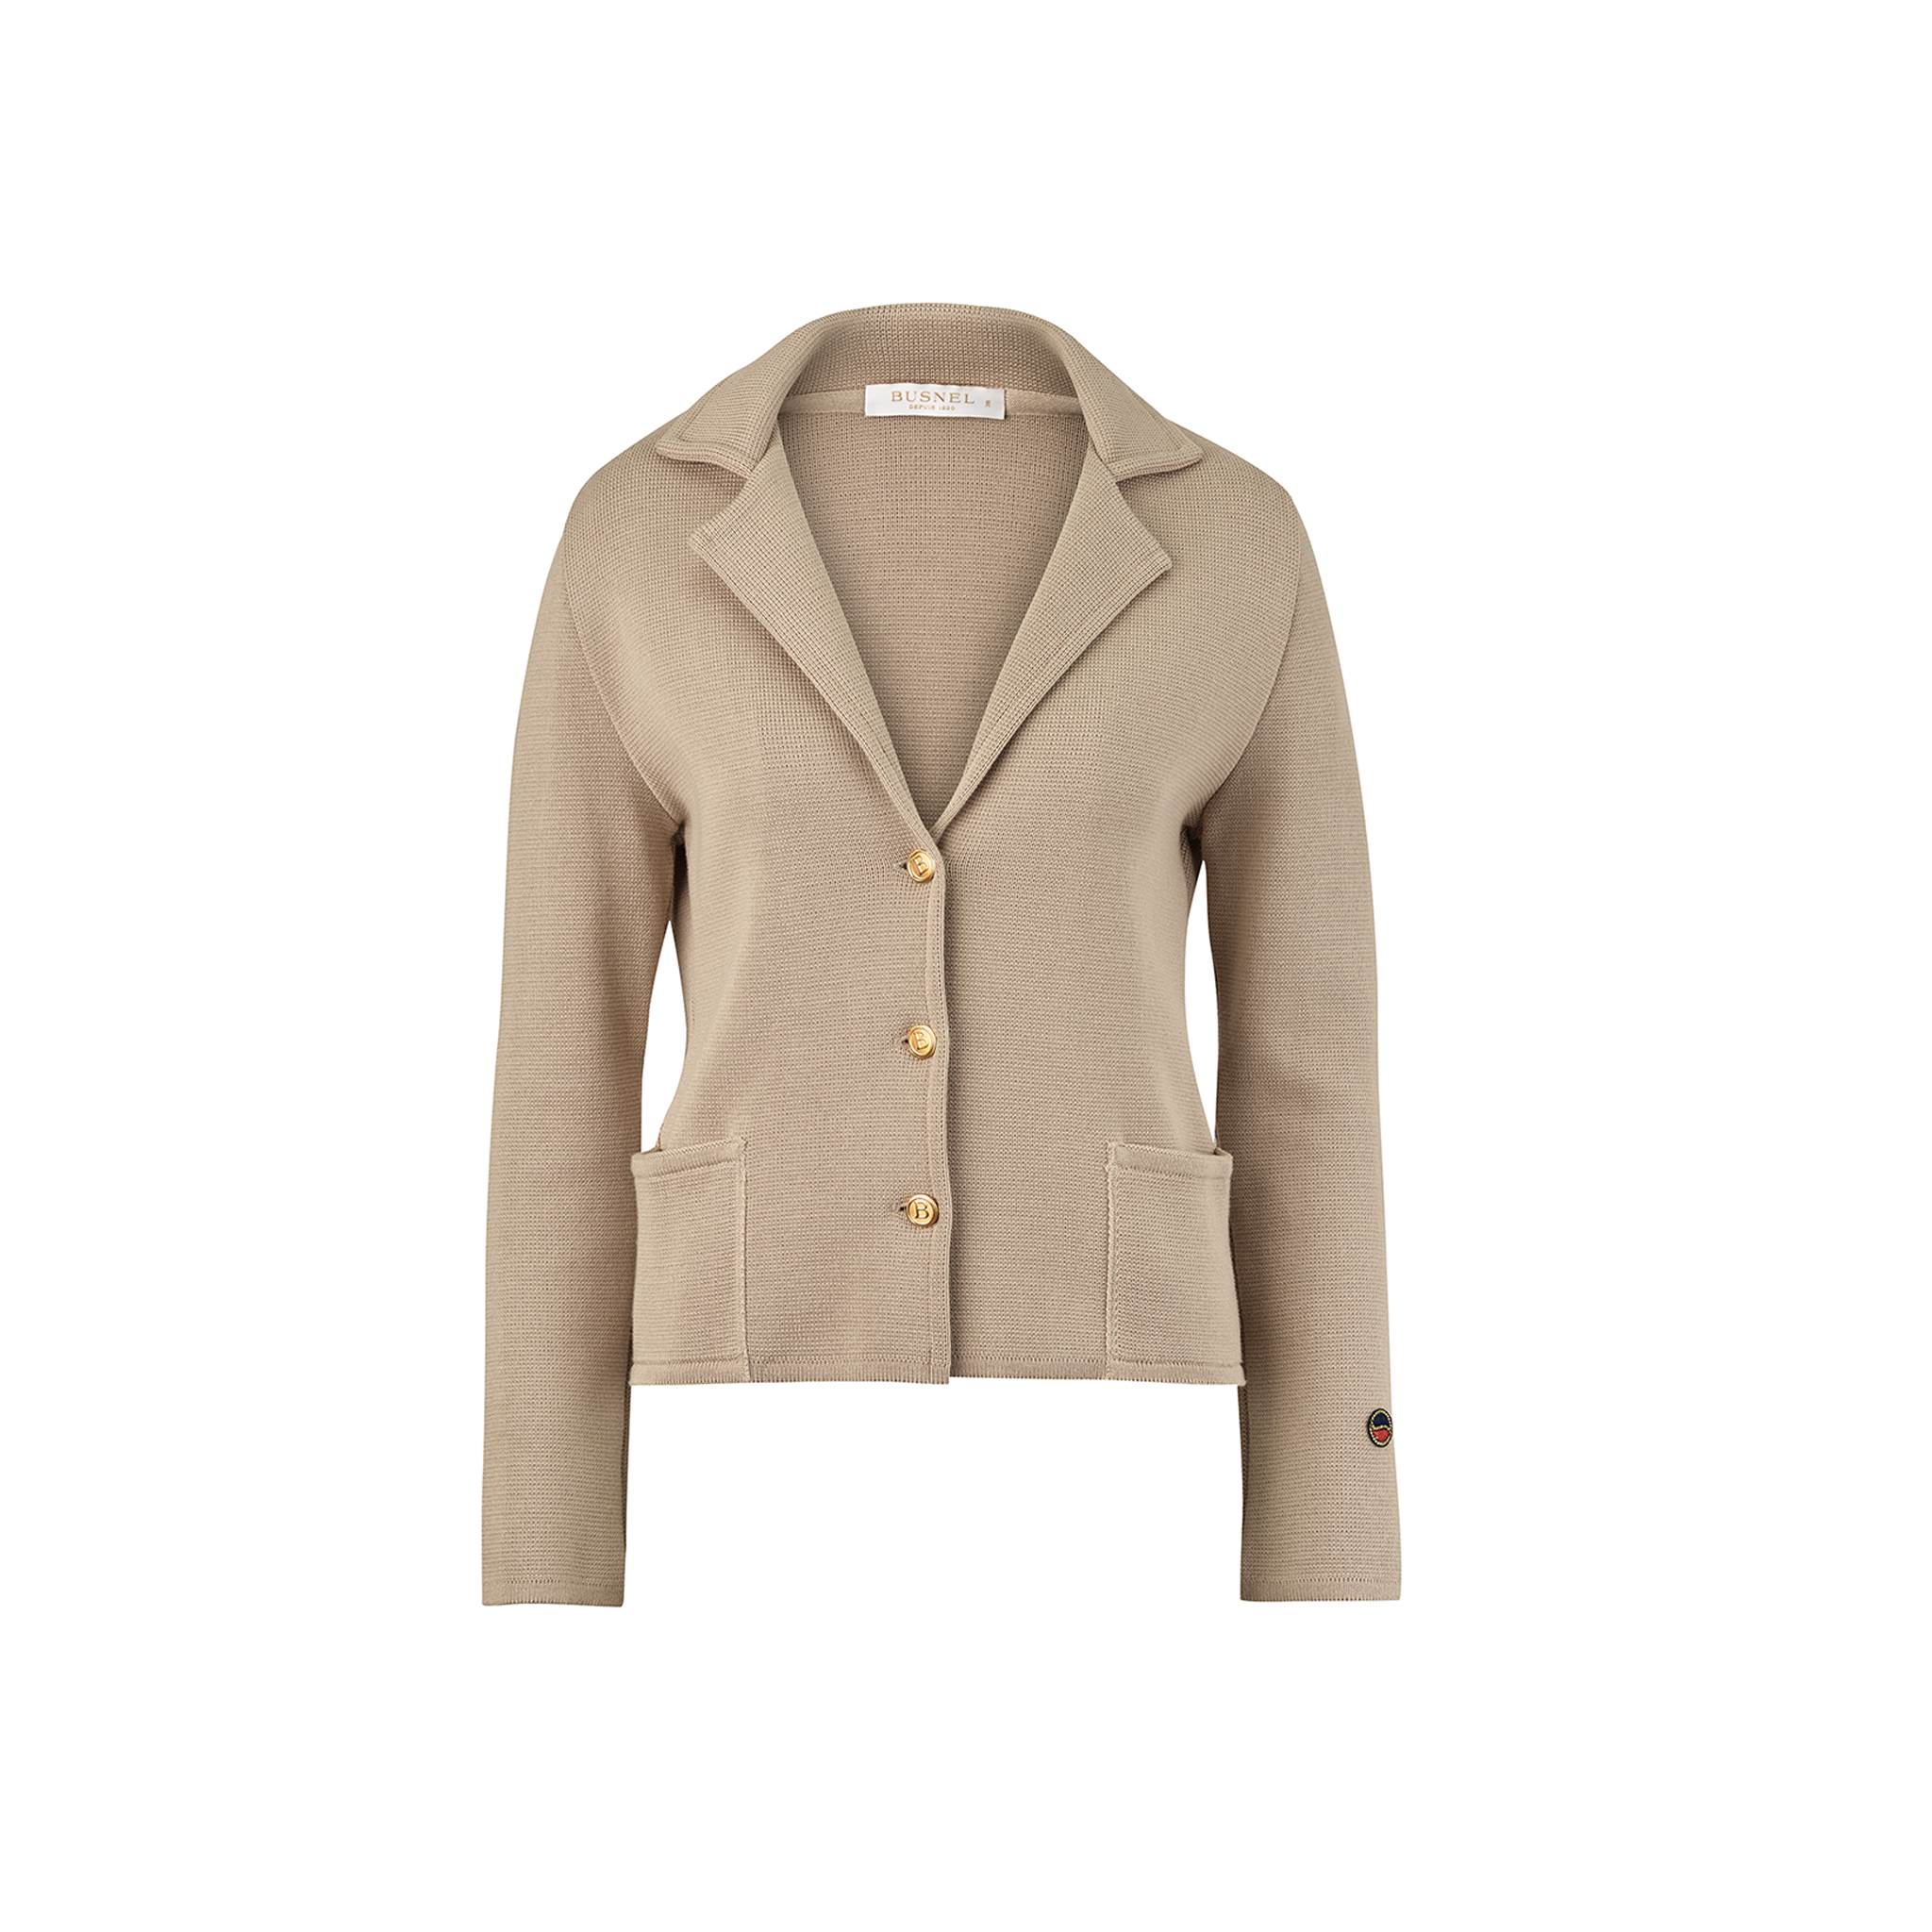 Ava Jacket sandstone from the Spring/Summer 17 collection. Find it here: https://www.busnel.com/collections/coats-jackets/products/ava-jacket-sandstone